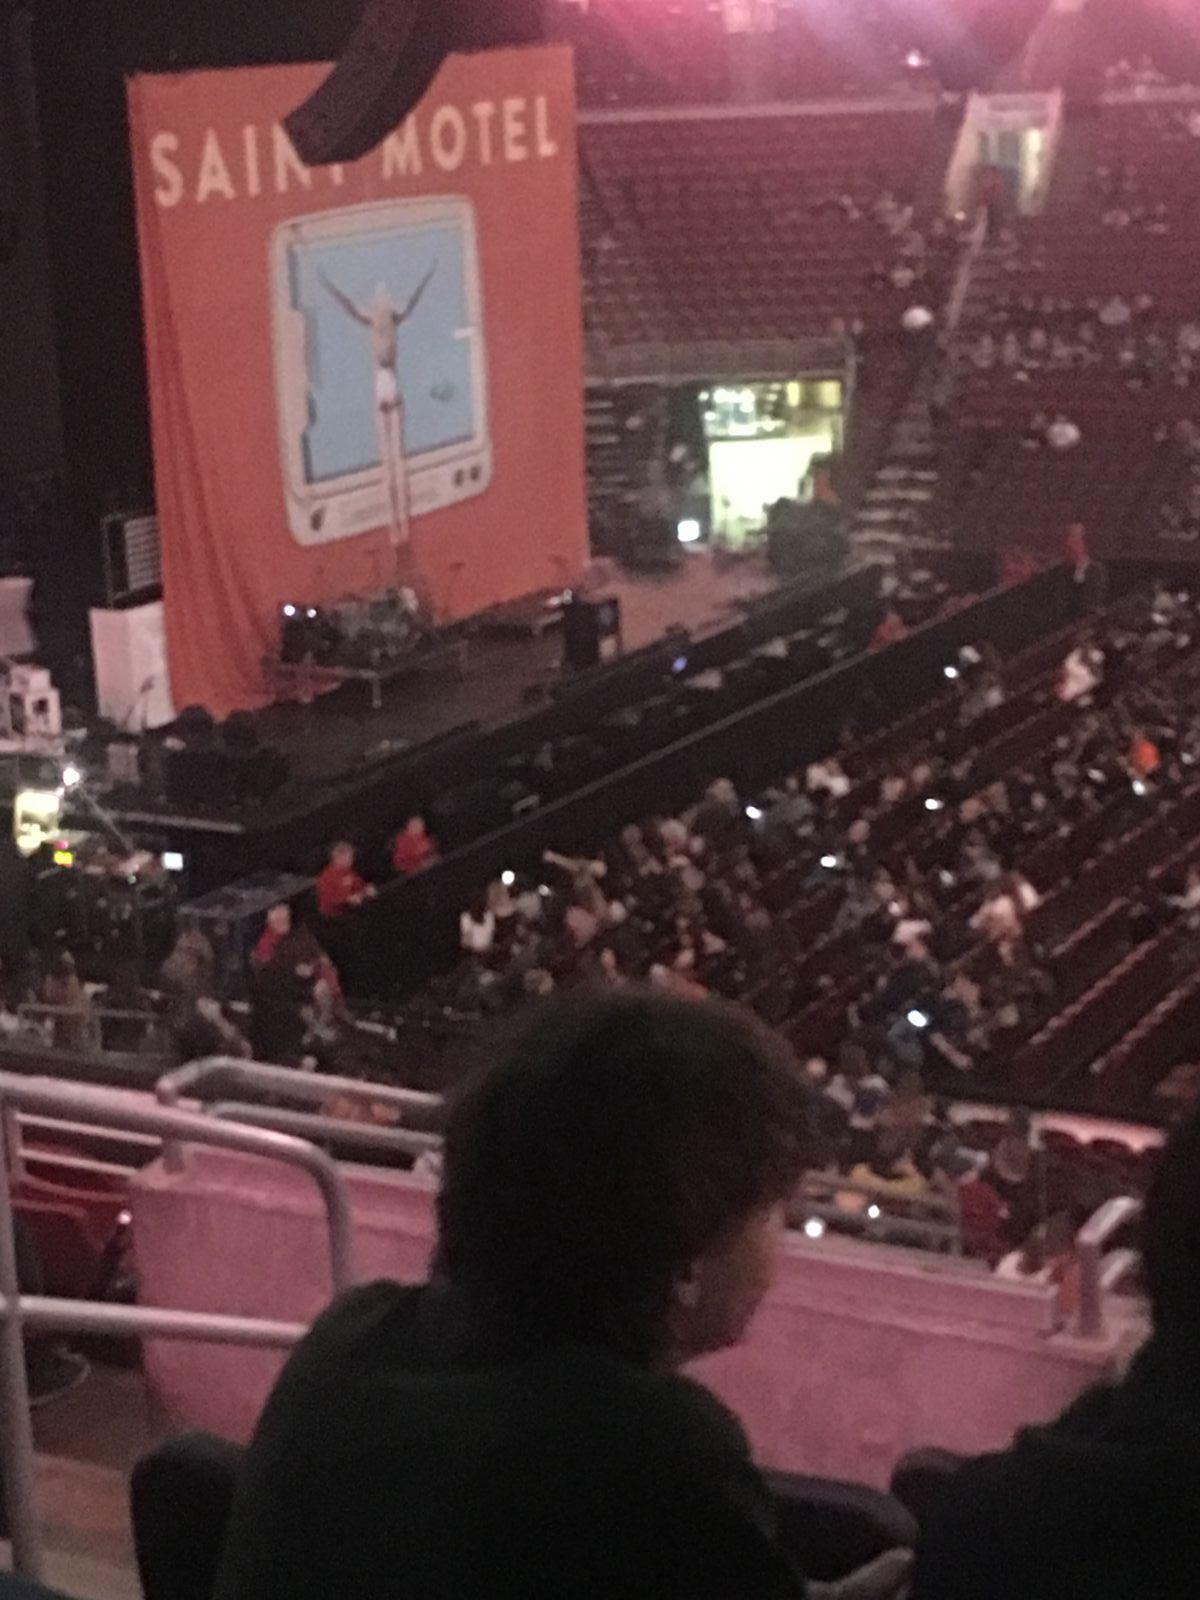 Concert Seat View for Wells Fargo Center Super Box 1, Row 6, Seat 3